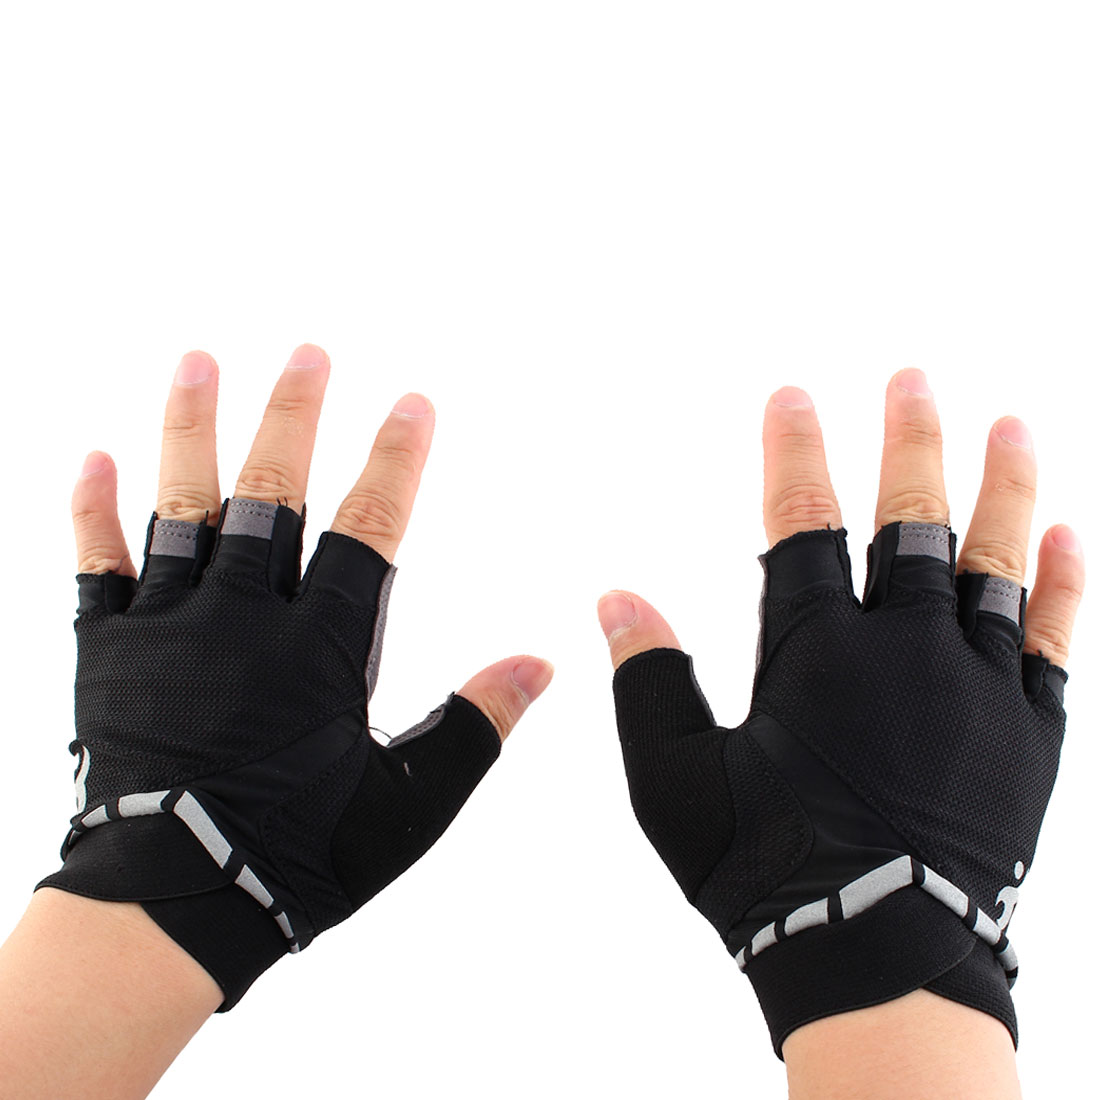 Boodun Authorized Outdoor Cycling Gym Workout Training Yoga Weight Lifting Half Finger Gloves Black Size M Pair